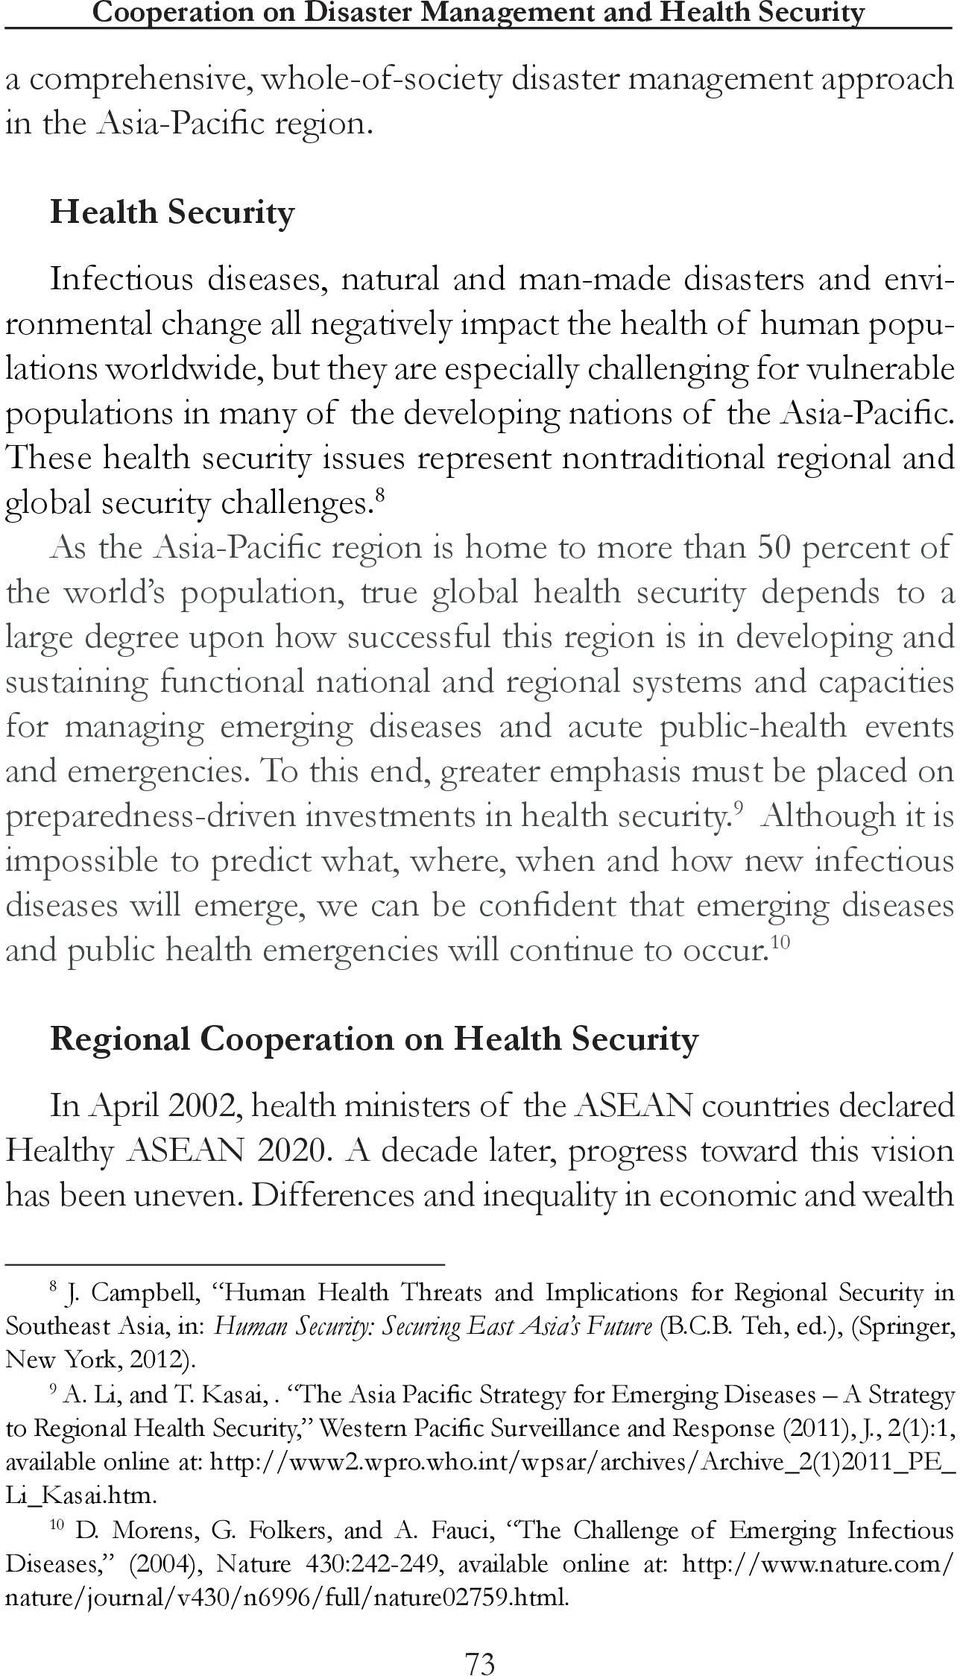 vulnerable populations in many of the developing nations of the Asia-Pacific. These health security issues represent nontraditional regional and global security challenges.